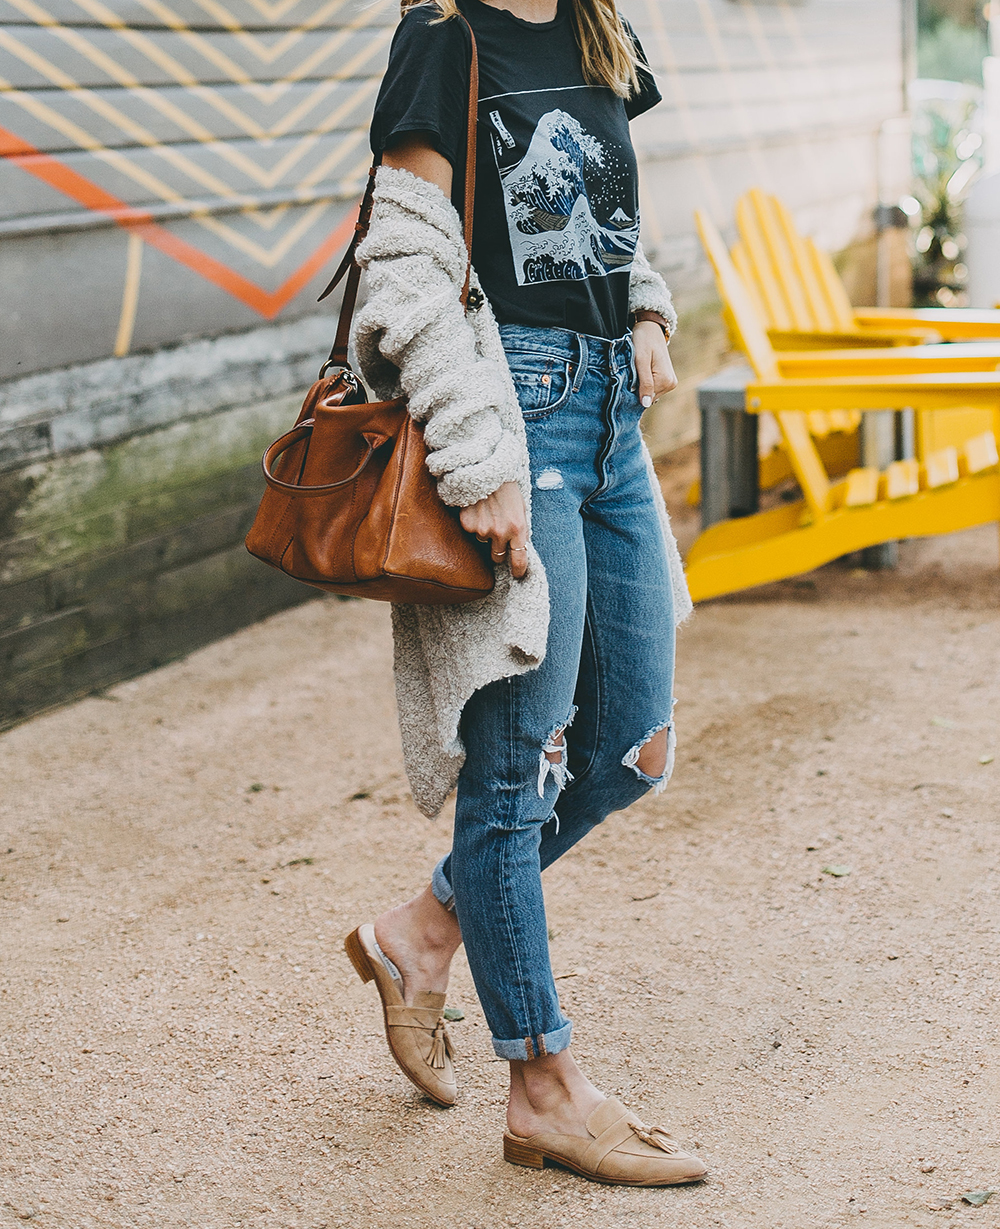 livvyland-blog-olivia-watson-toms-coffee-austin-texas-fashion-blogger-casual-fall-weekend-outfit-boucle-knit-cardigan-urban-outfitters-the-great-wave-art-10